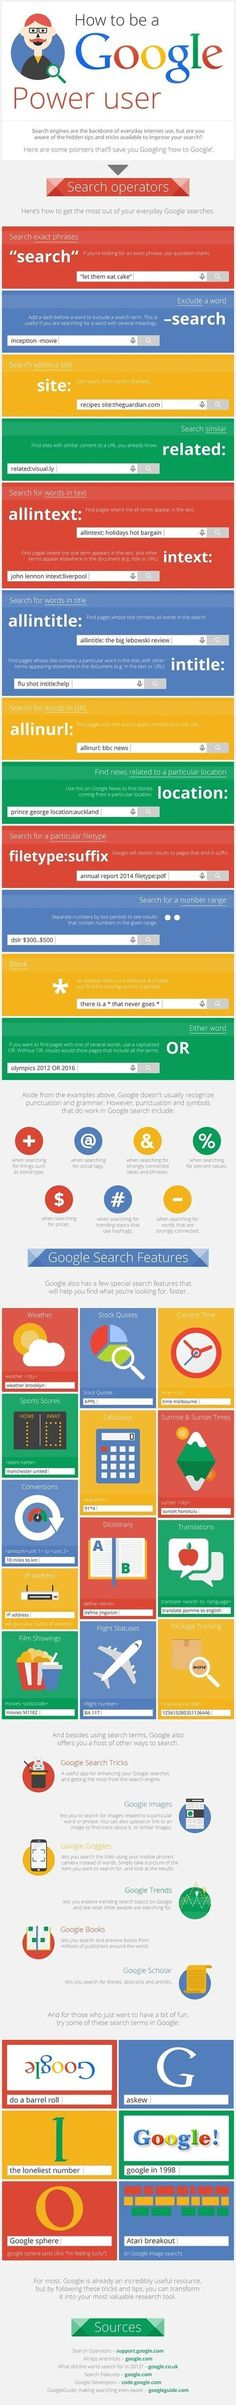 46 Hidden Tips and Tricks to Use Google Search Like a Boss: Infographic | Education Matters - (tech and non-tech) | Scoop.it